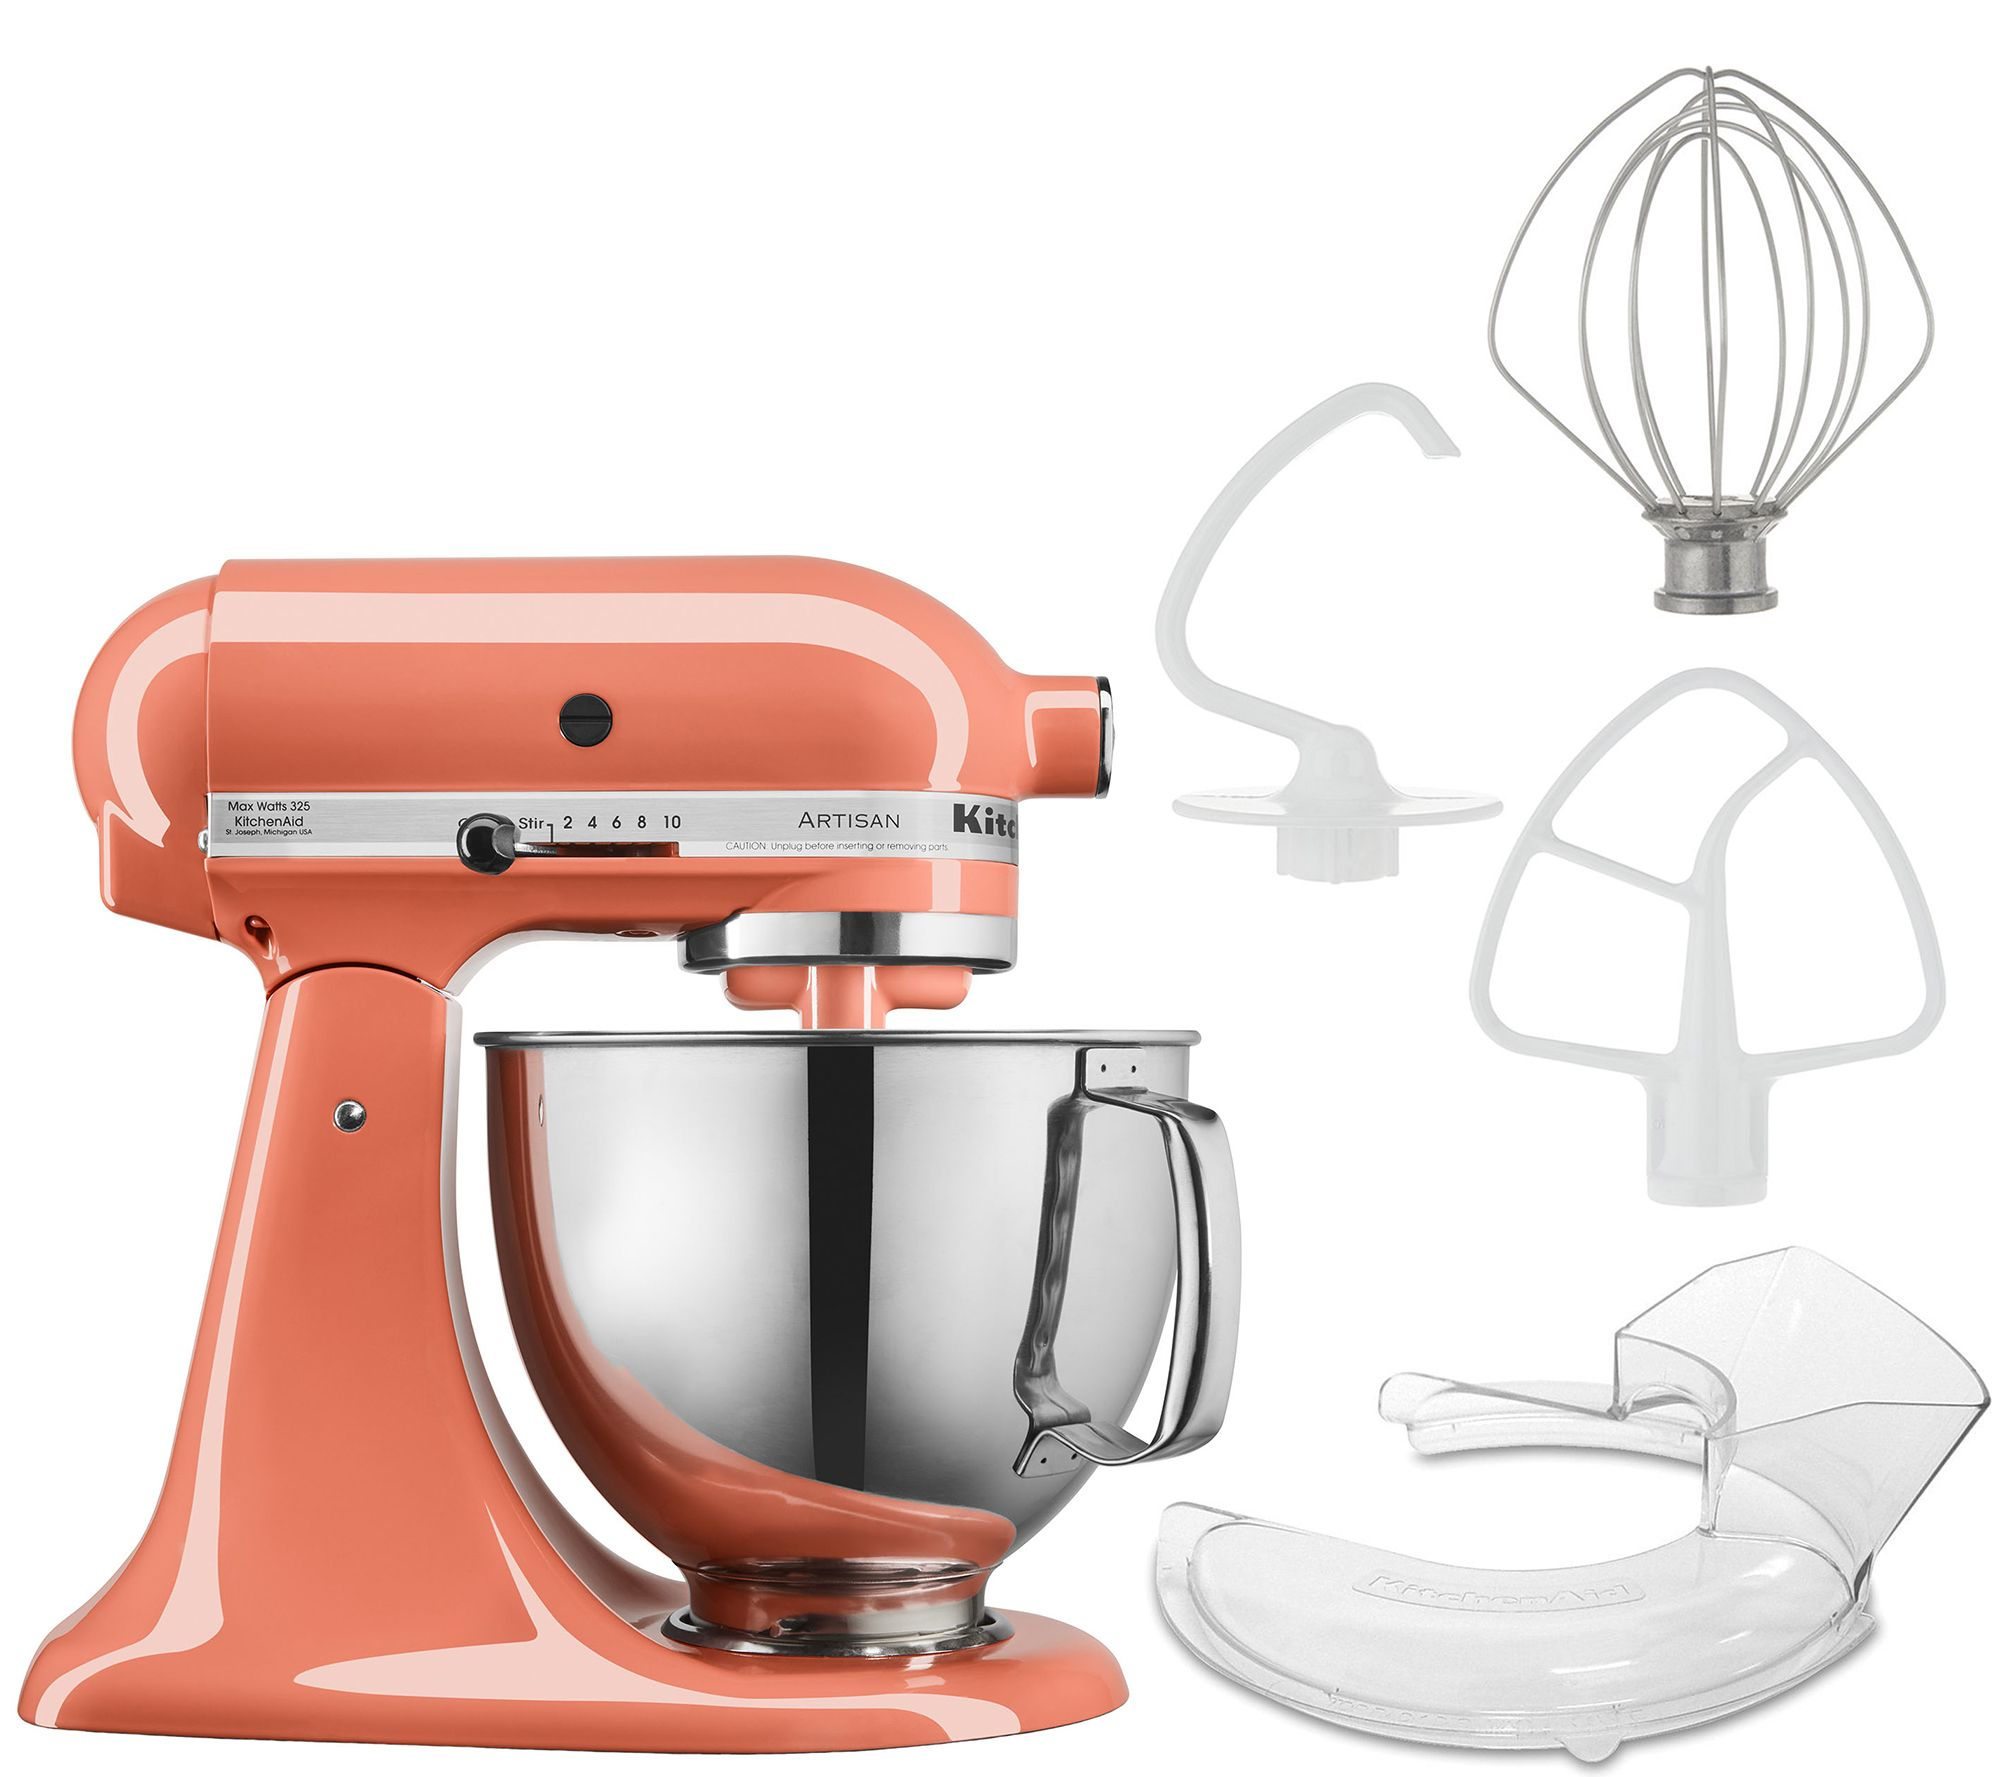 KitchenAid Artisan 5-qt Tilt-Head Mixer — QVC.com